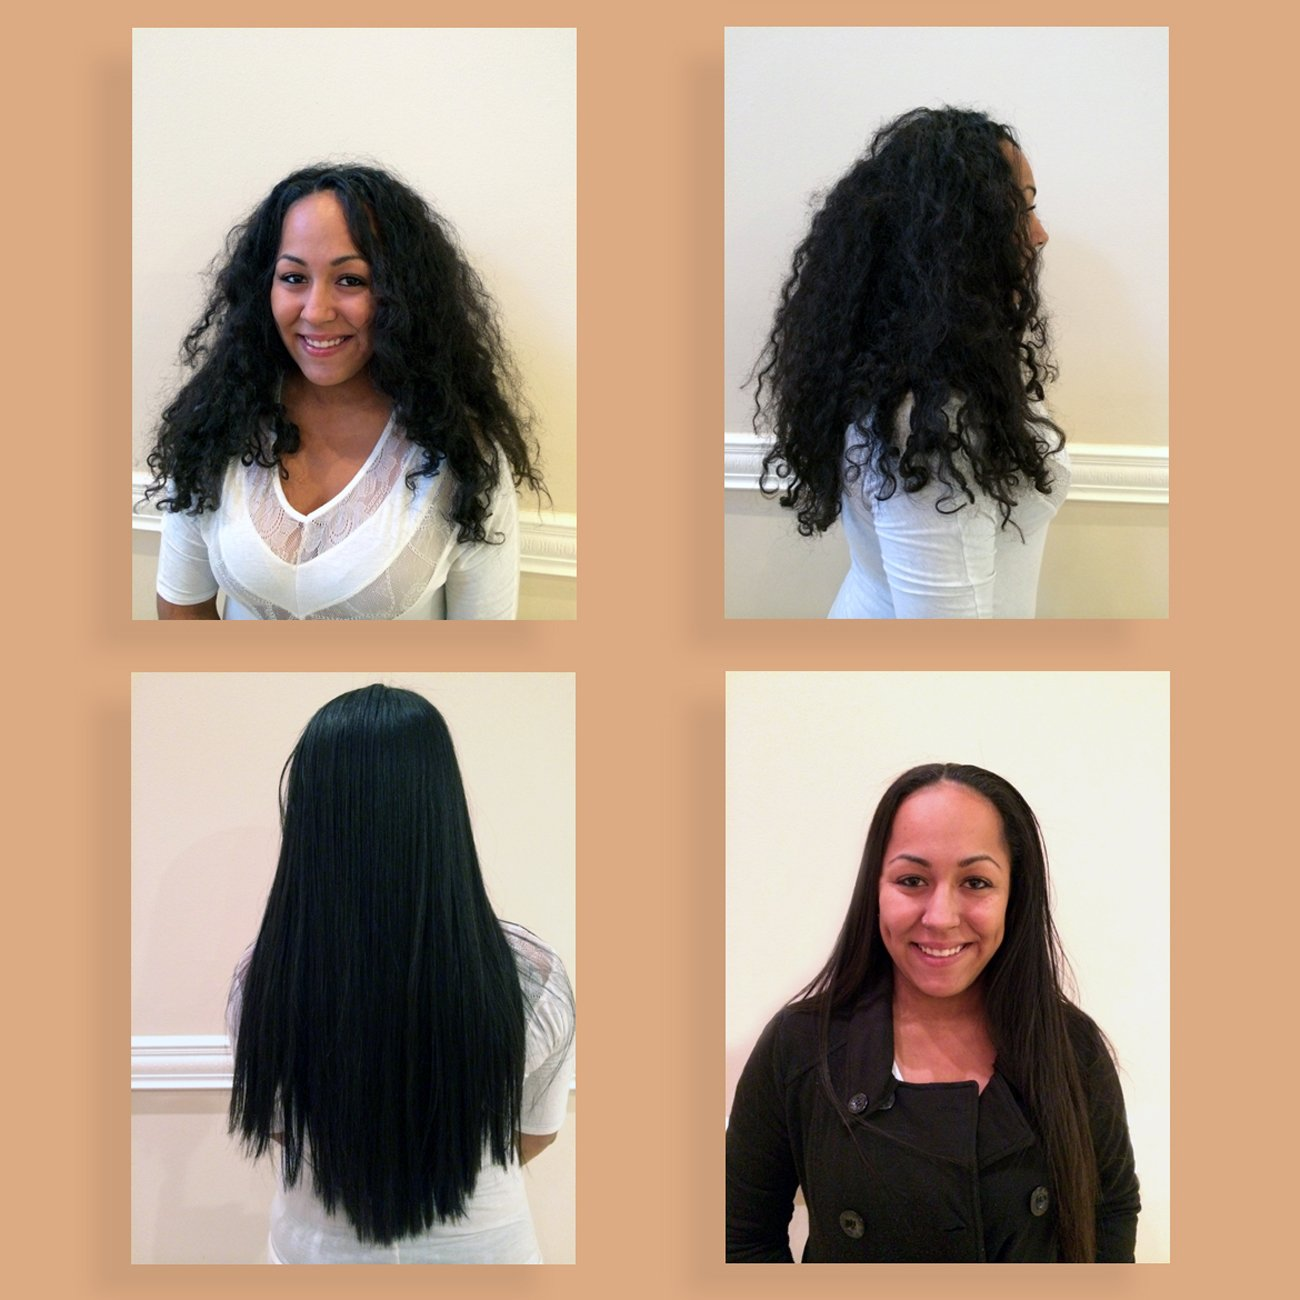 Buy complex brazilian keratin hair treatment 120ml professional buy complex brazilian keratin hair treatment 120ml professional results straighten and smooths hair kt 120ml keratin treatment only online at low prices fandeluxe Epub